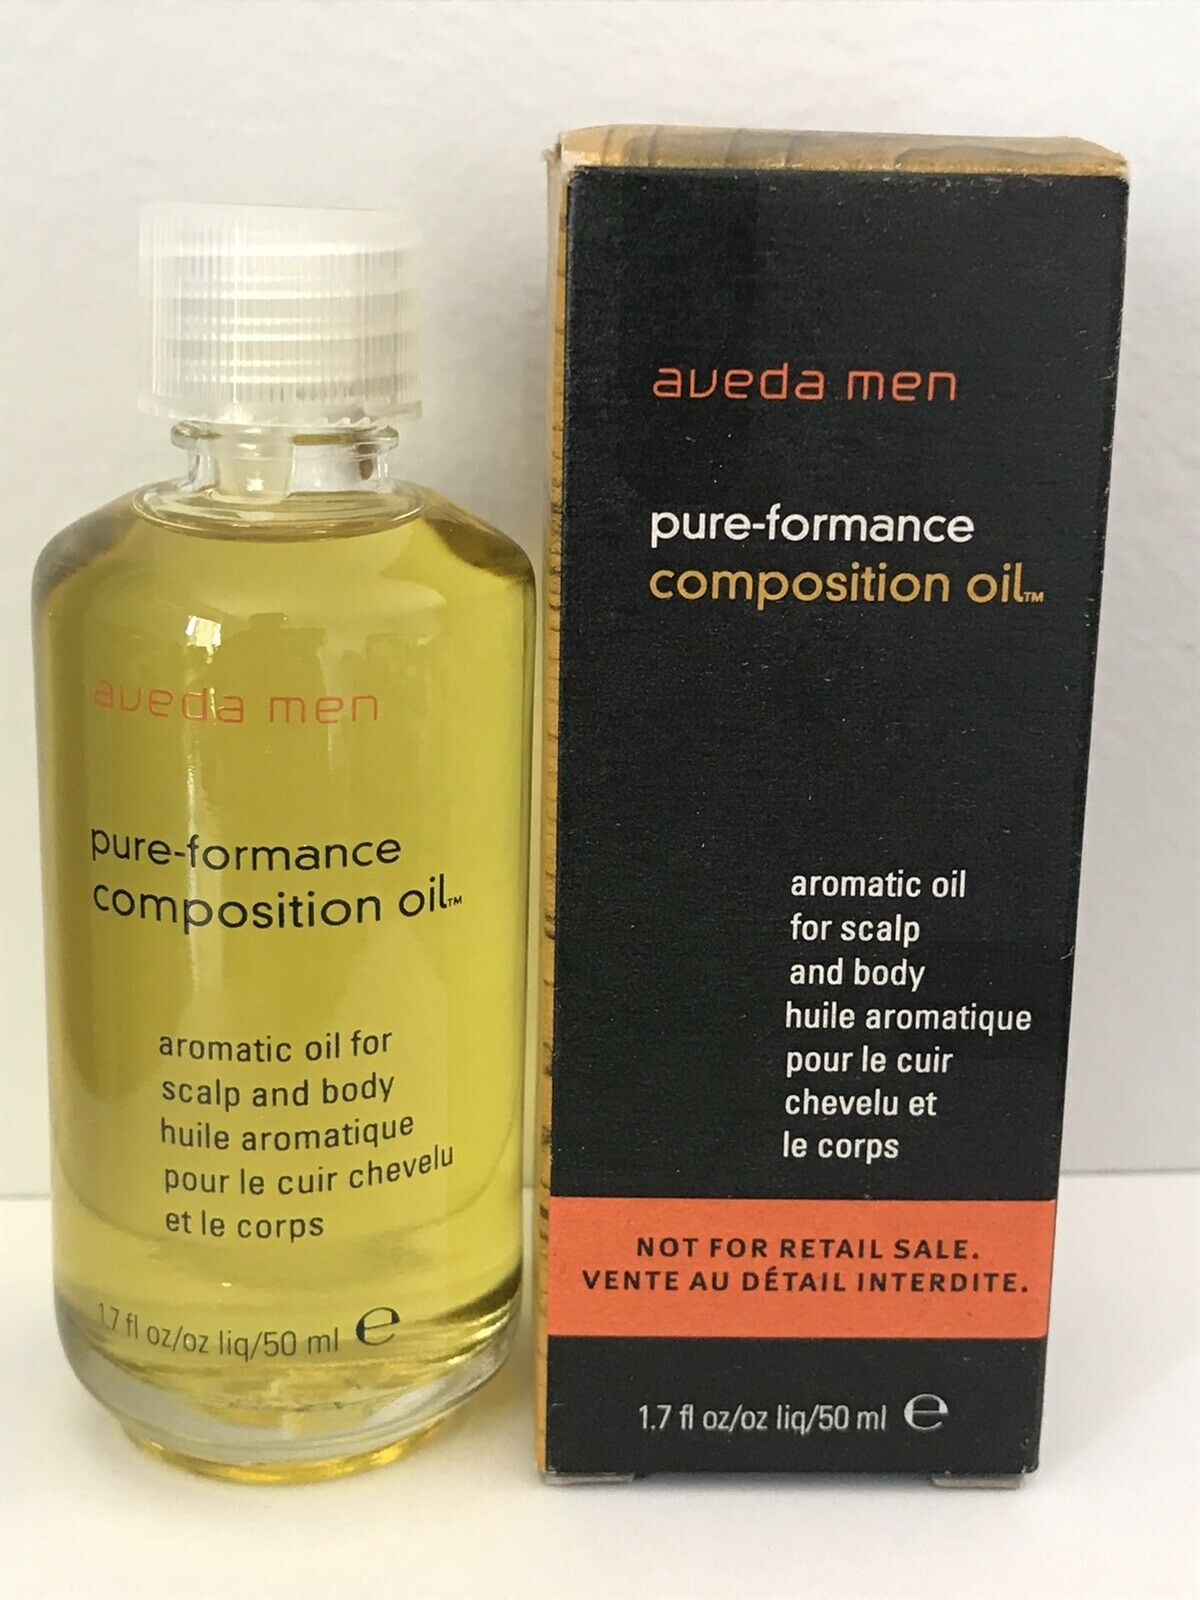 Aveda Men Pure-Formance Composition Aromatic Oil 1.7 oz 50ml